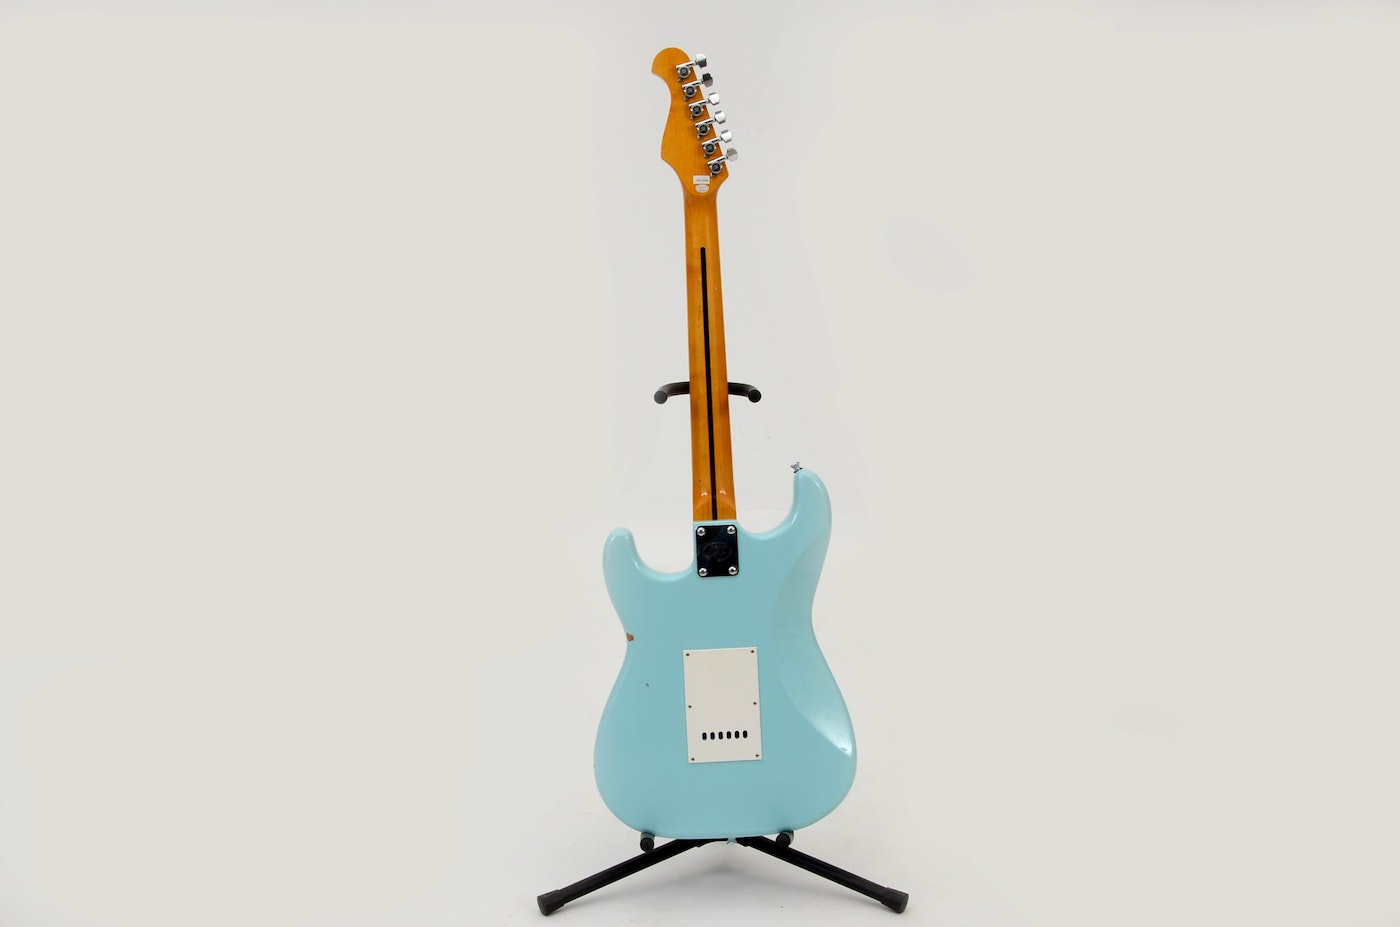 SX Vintage Series Electric Guitar in Robins Egg Blue and